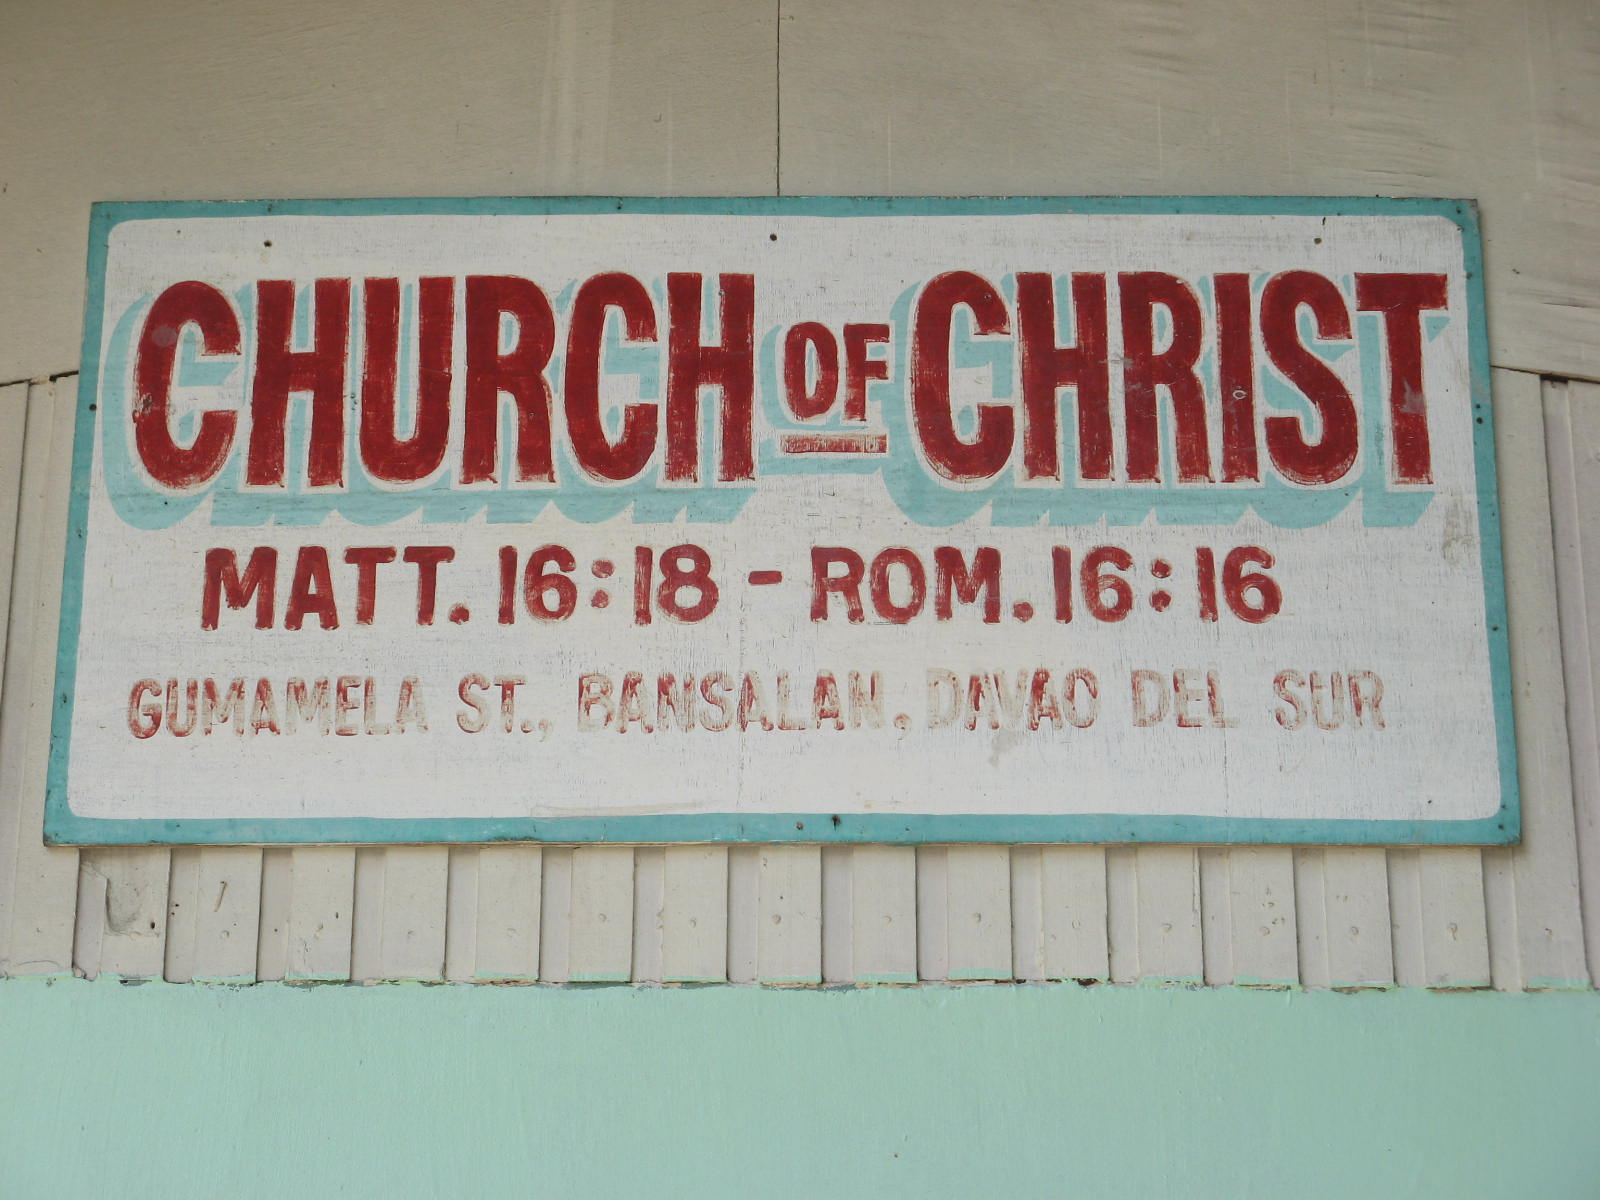 Brother Franklin Isla, the preacher here in Bansalan church of Christ has invited many preachers from different places. The SPEAKERS on this afternoon were ...